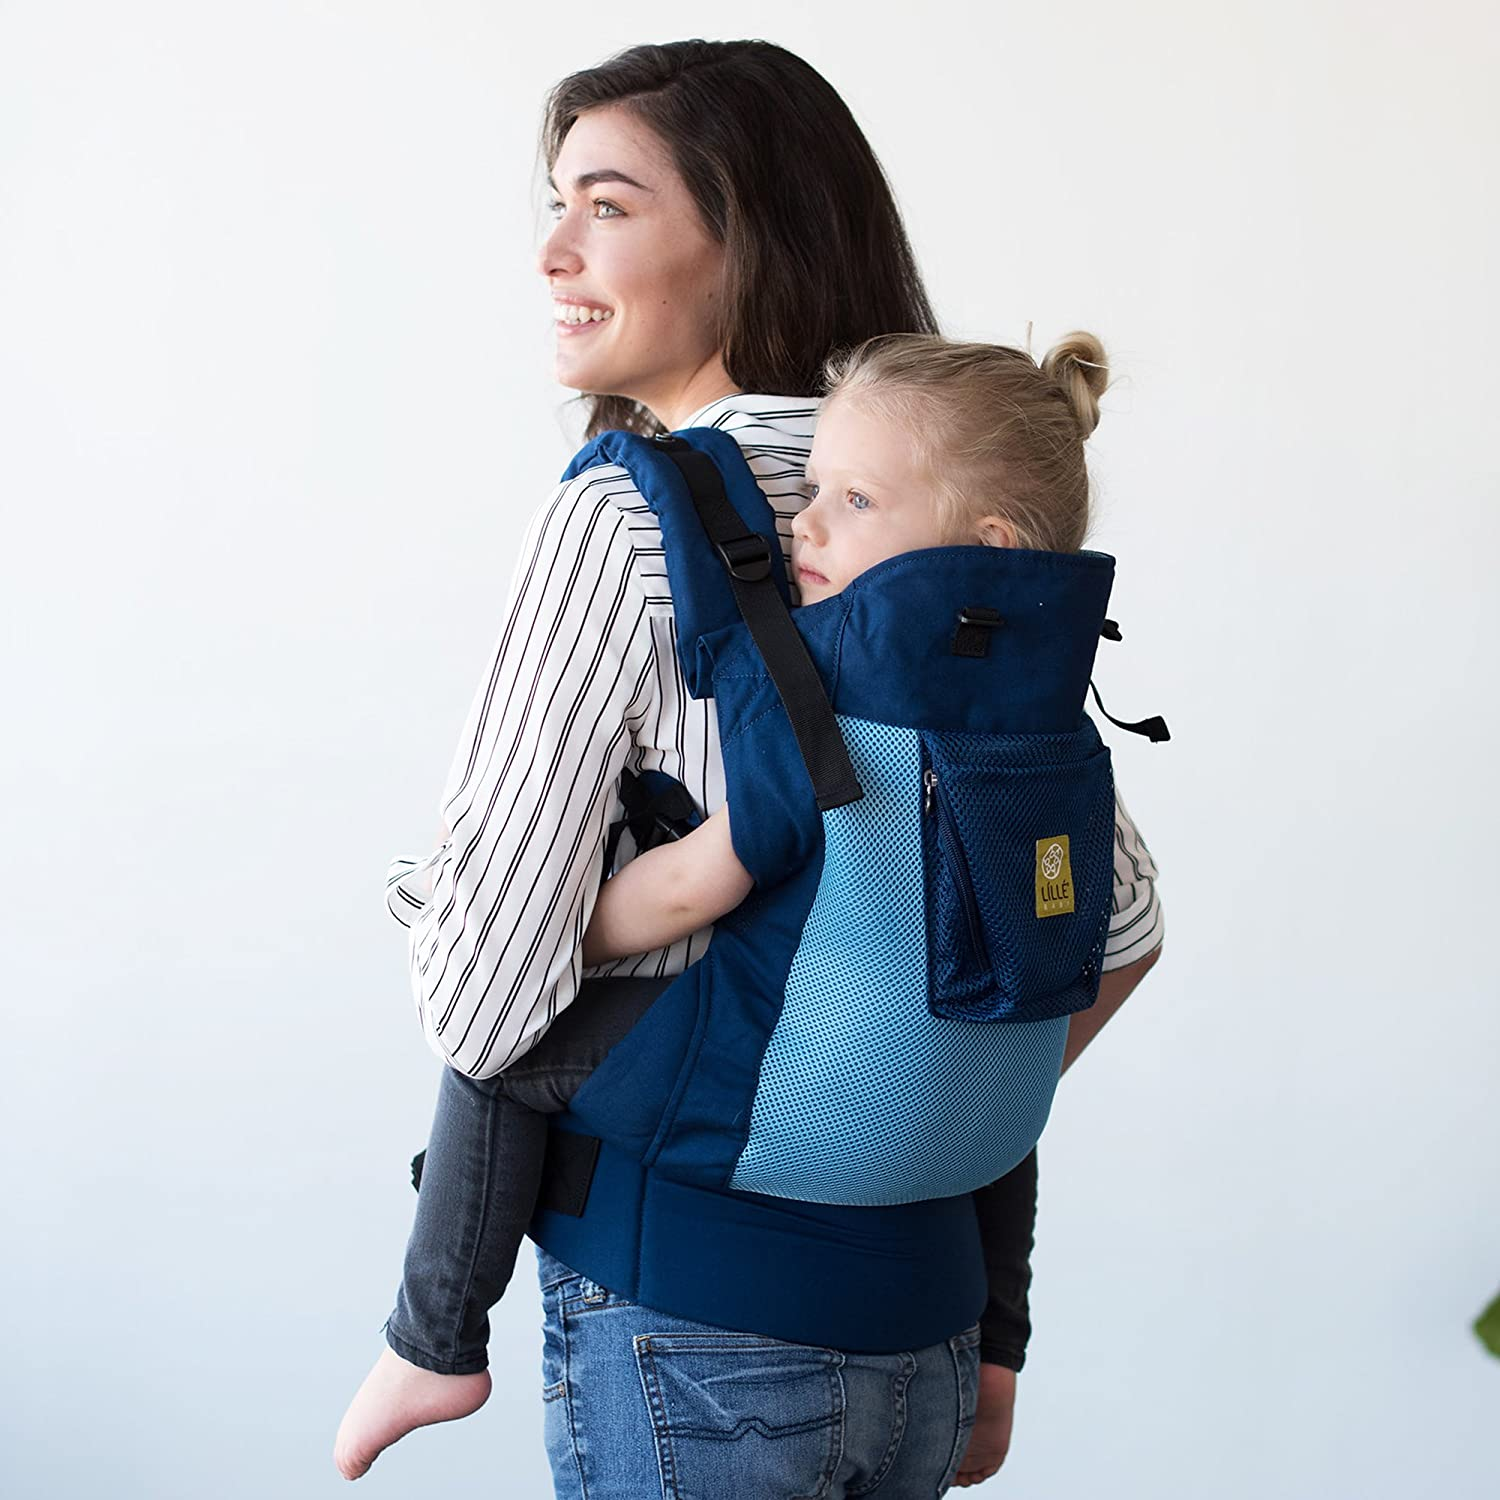 4bf291f2092 Charcoal Silver LILLEbaby CO-4A-404-N Airflow LÍ LLÉ baby 3 in 1 CarryOn  Toddler Carrier